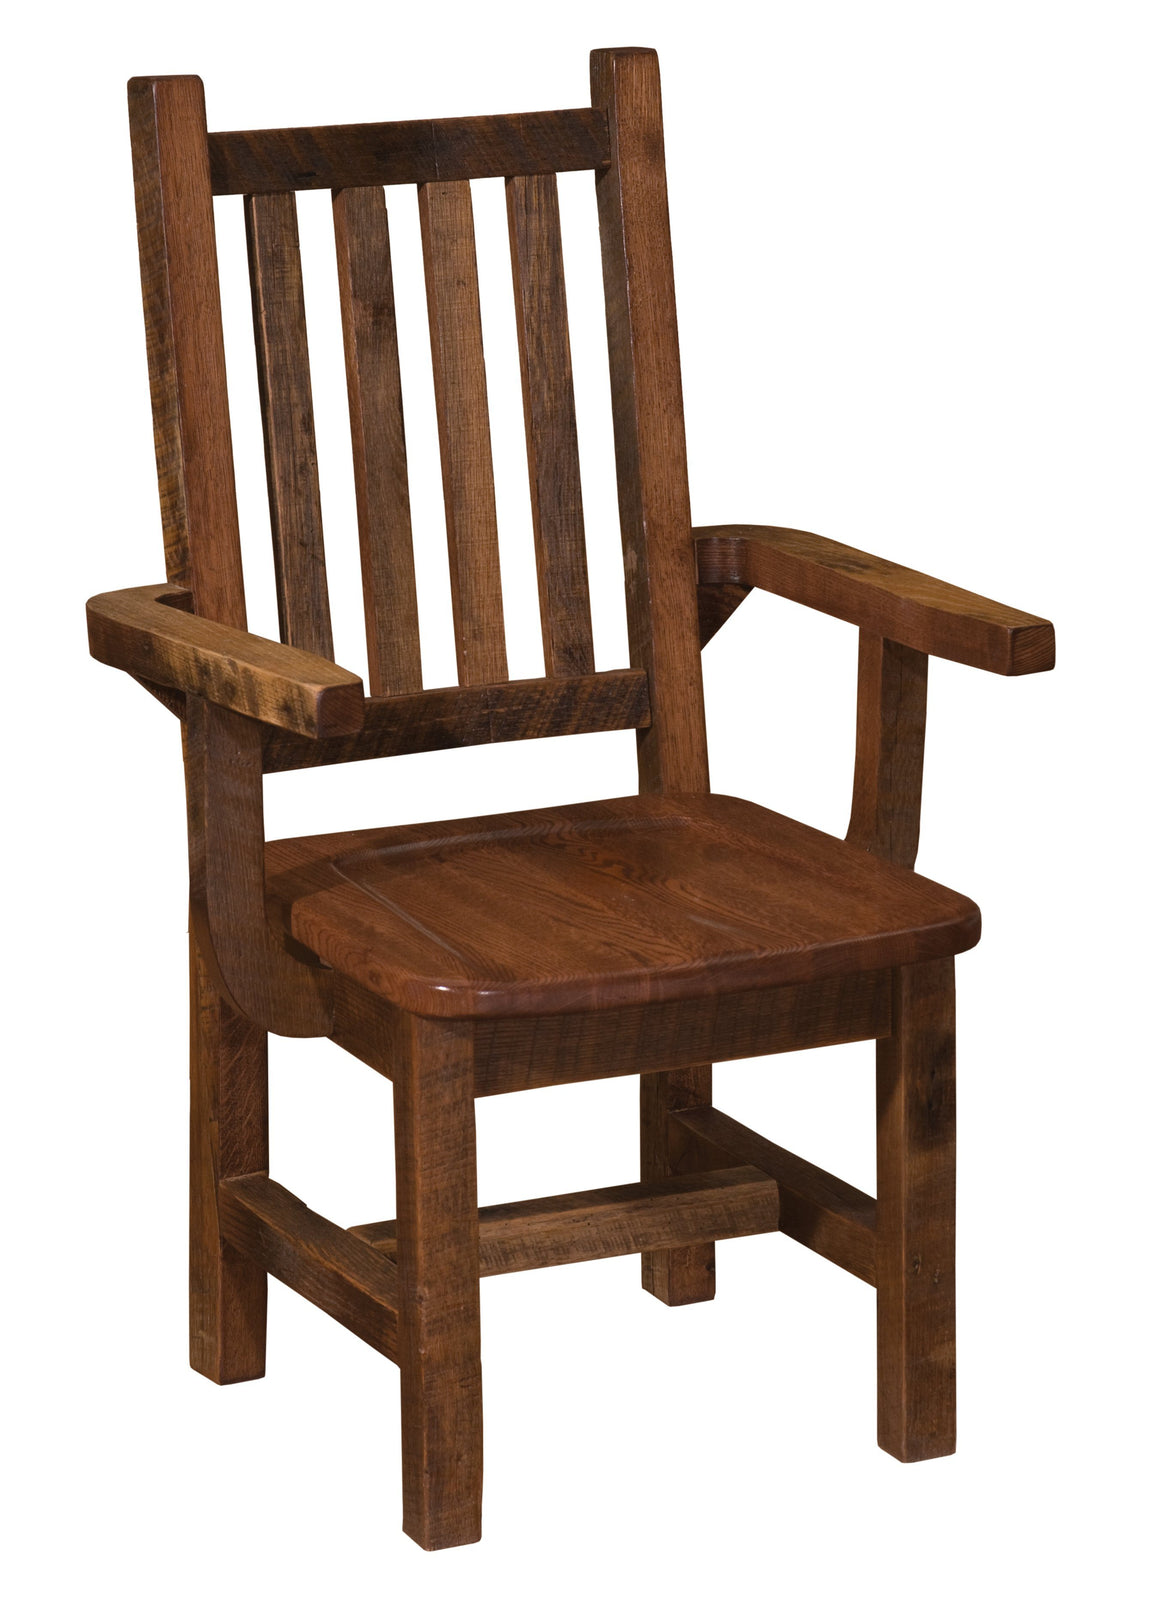 Barnwood Prairie Dining Arm Chair -  Antique Oak Seat - Rustic Deco Incorporated